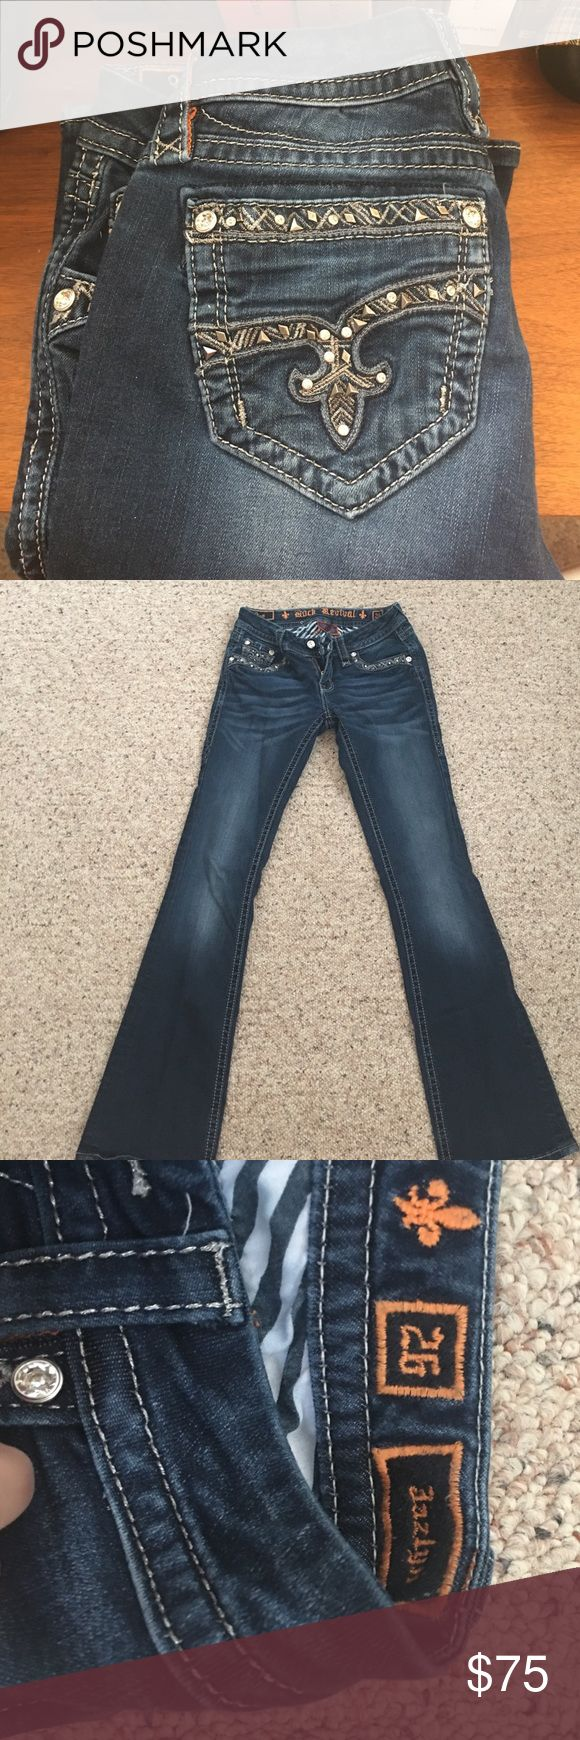 Rock Revival Jeans Size 26 rocks. Only worn 2 times. Will trade for other rocks or miss me's (: preferred to be skinny jeans! Rock Revival Jeans Boot Cut